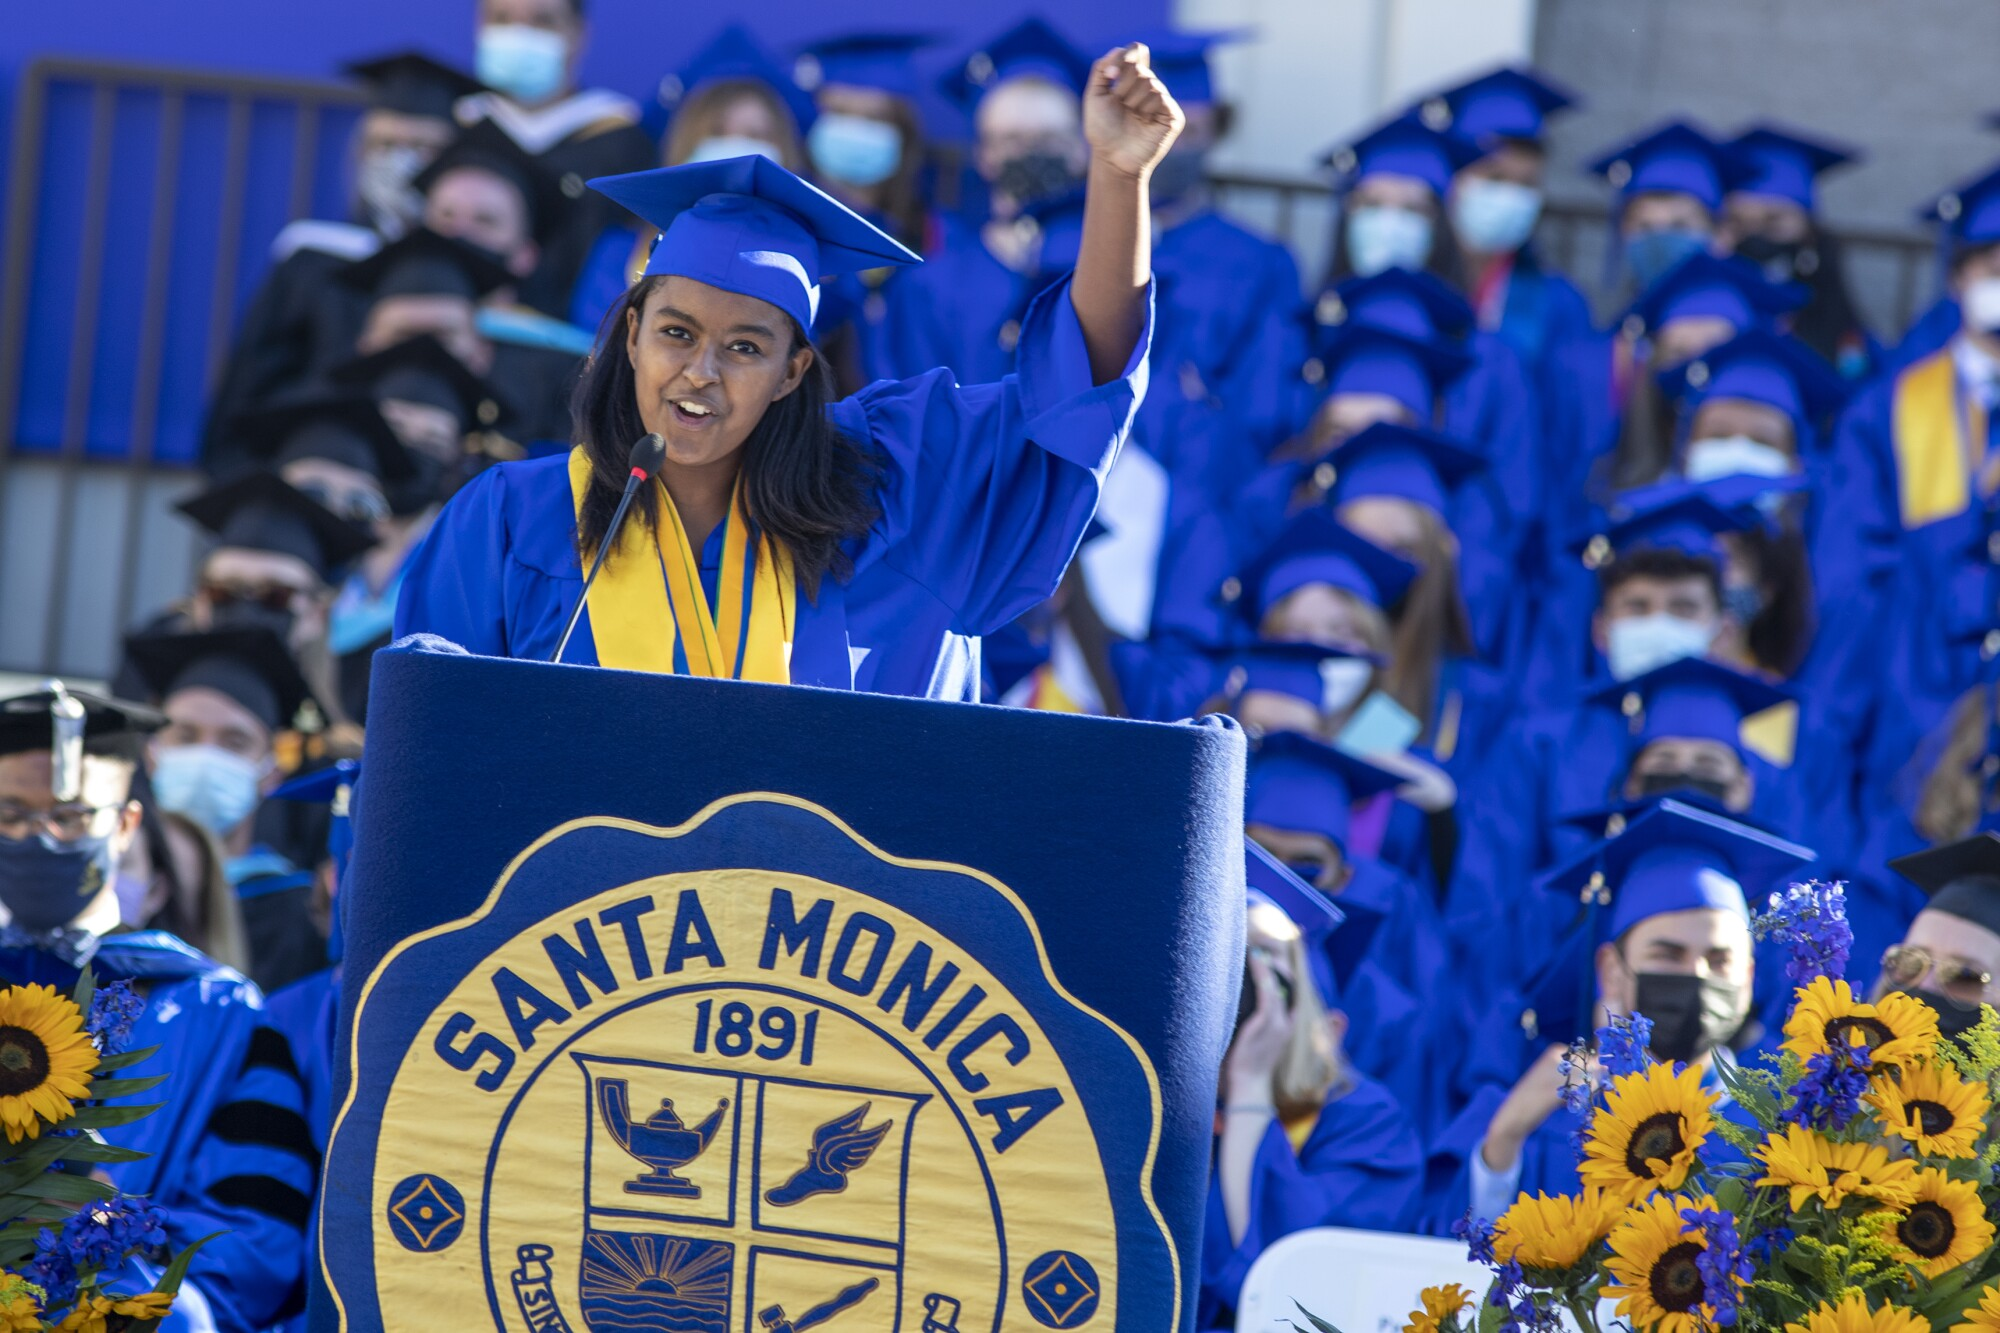 A high school graduate in cap and gown speaks into a microphone at a lectern and lifts one fist in the air.